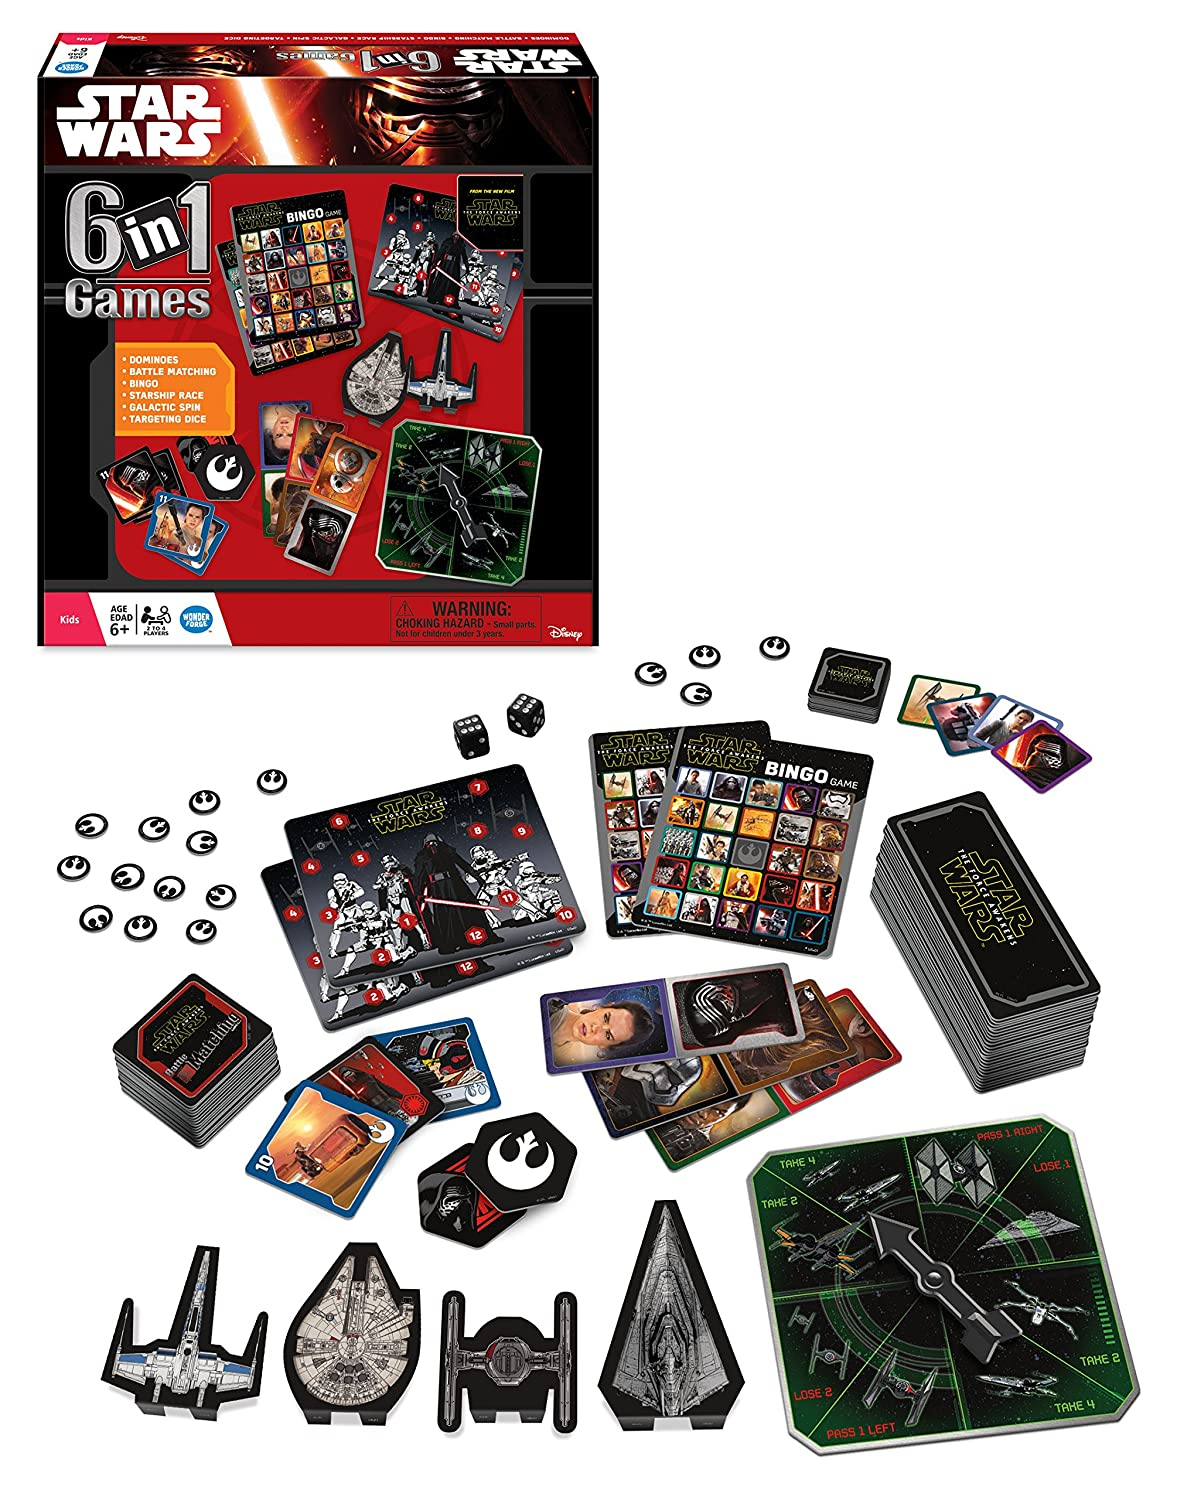 Uncategorized Star Wars Matching Game amazon com star wars the force awakens 6 in 1 game collection toys games